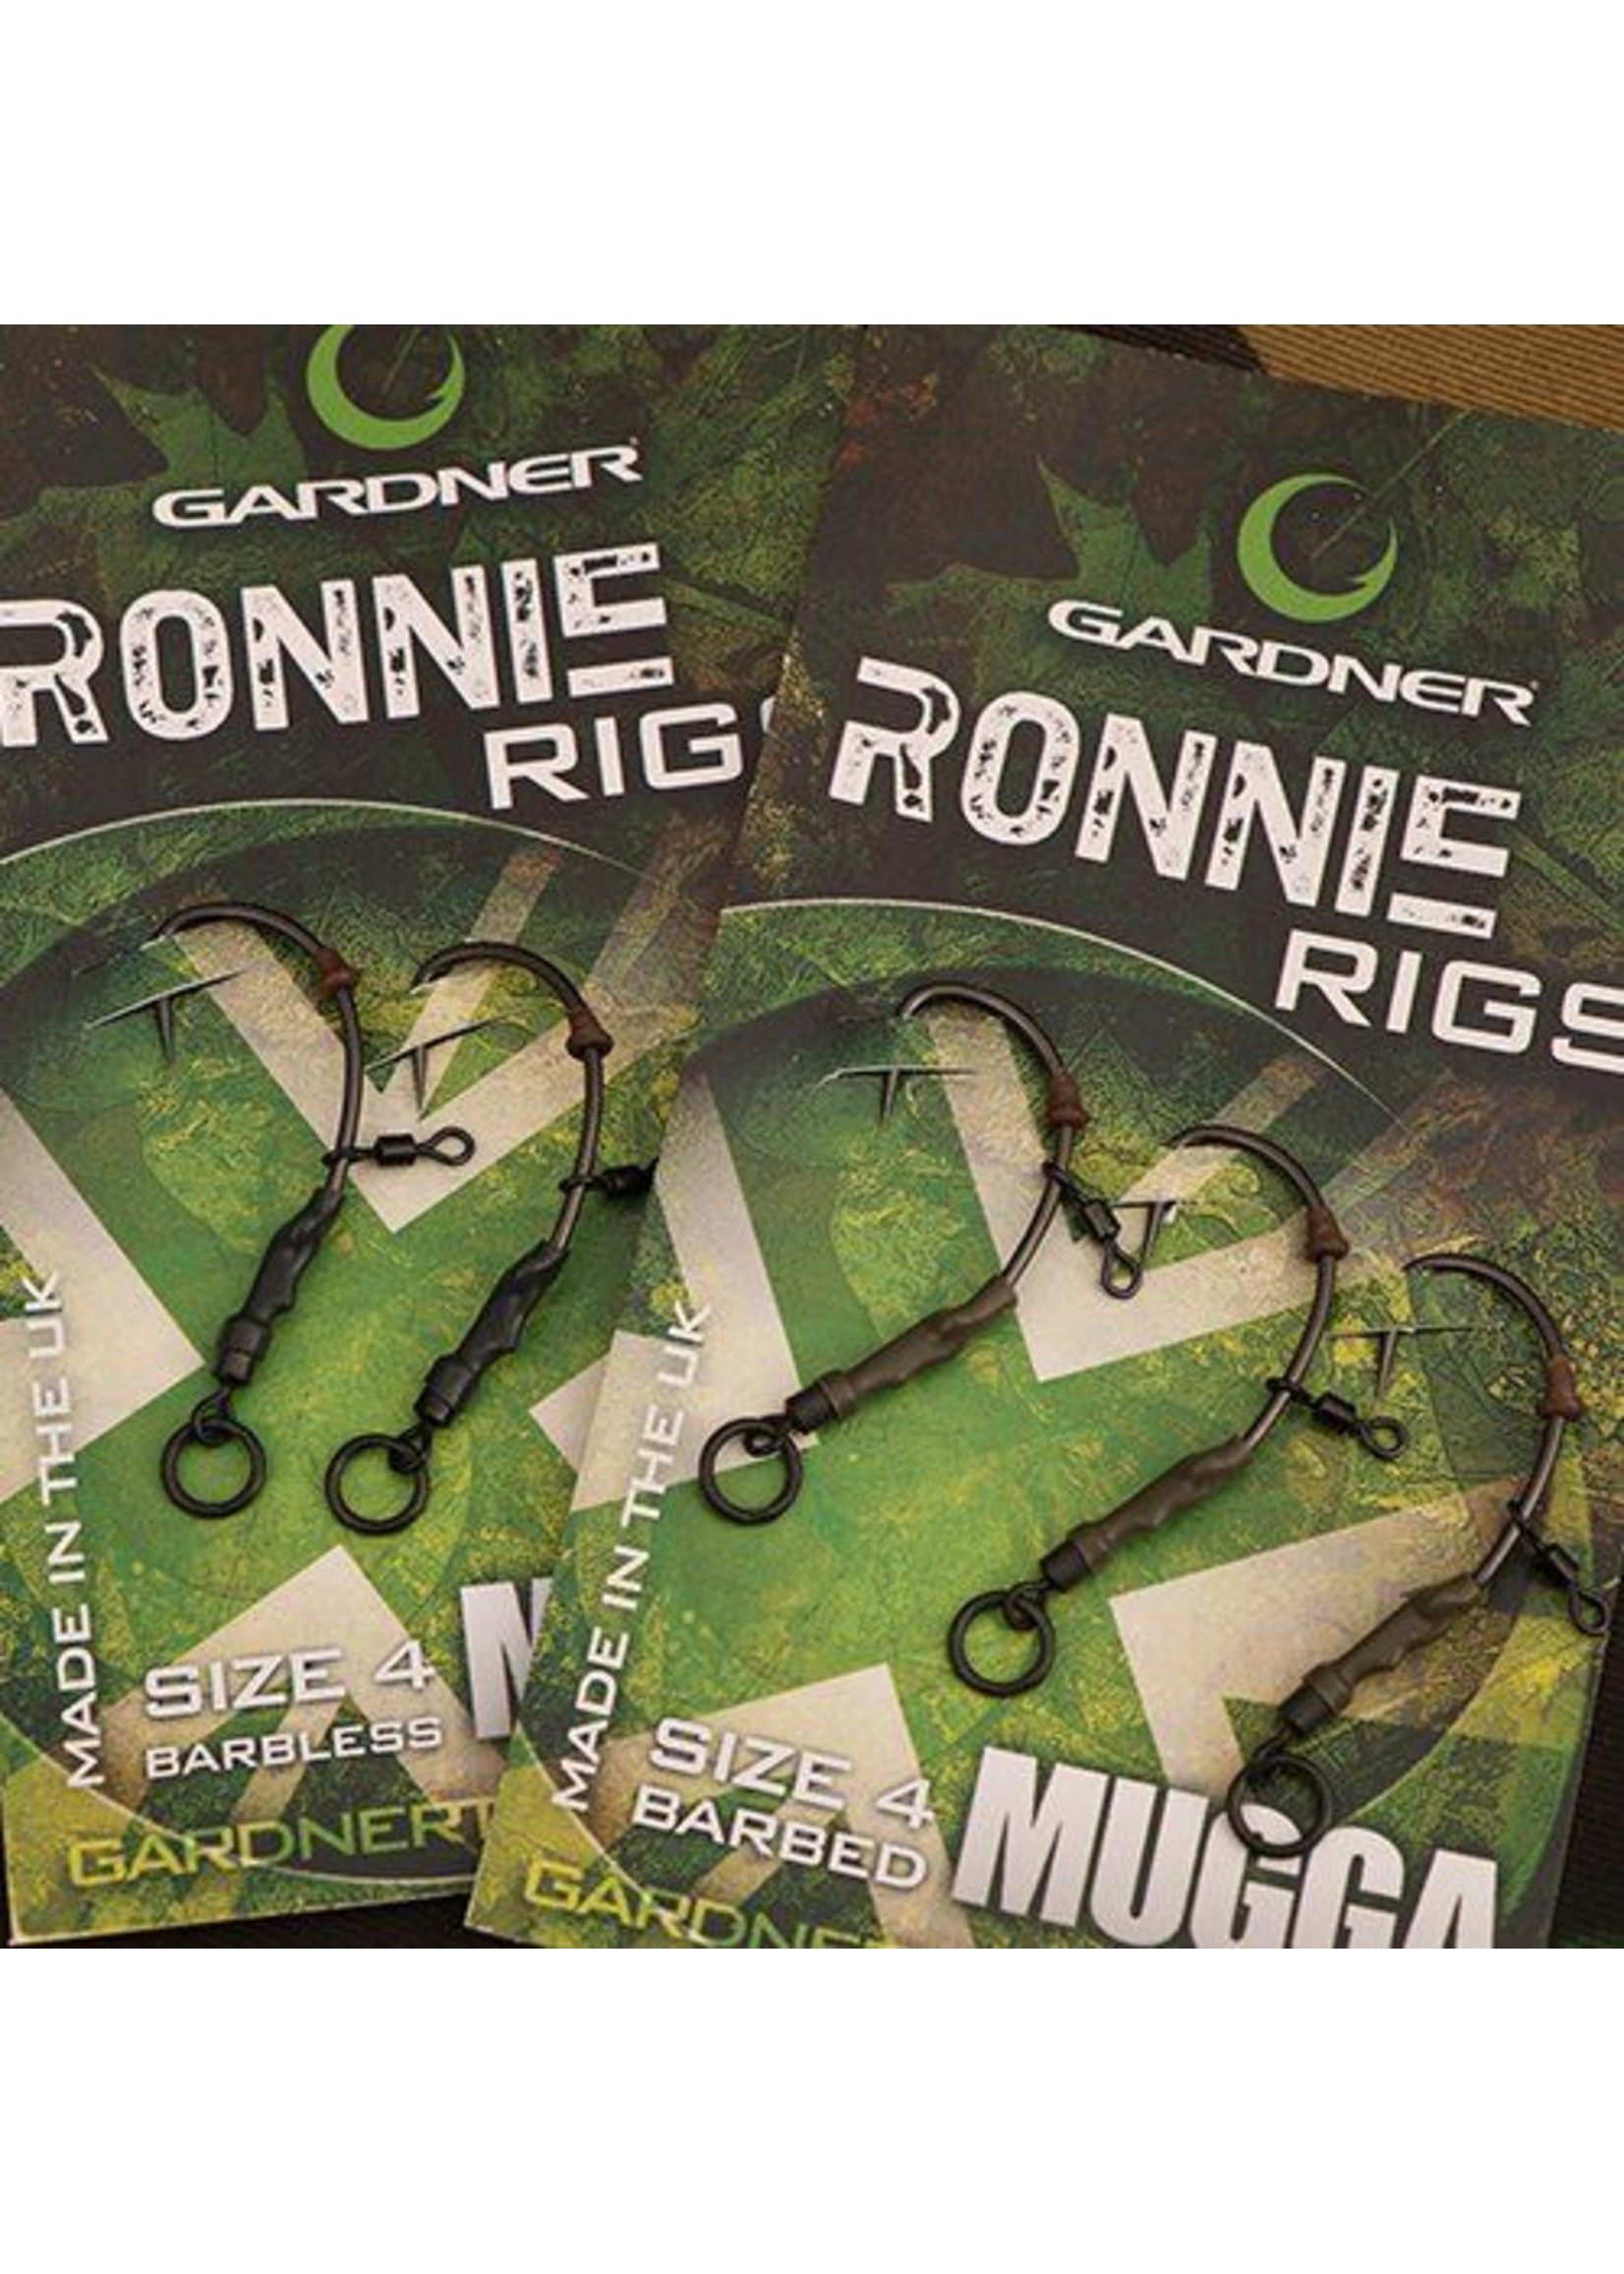 Gardner Ronnie Rigs Size 4 Barbed